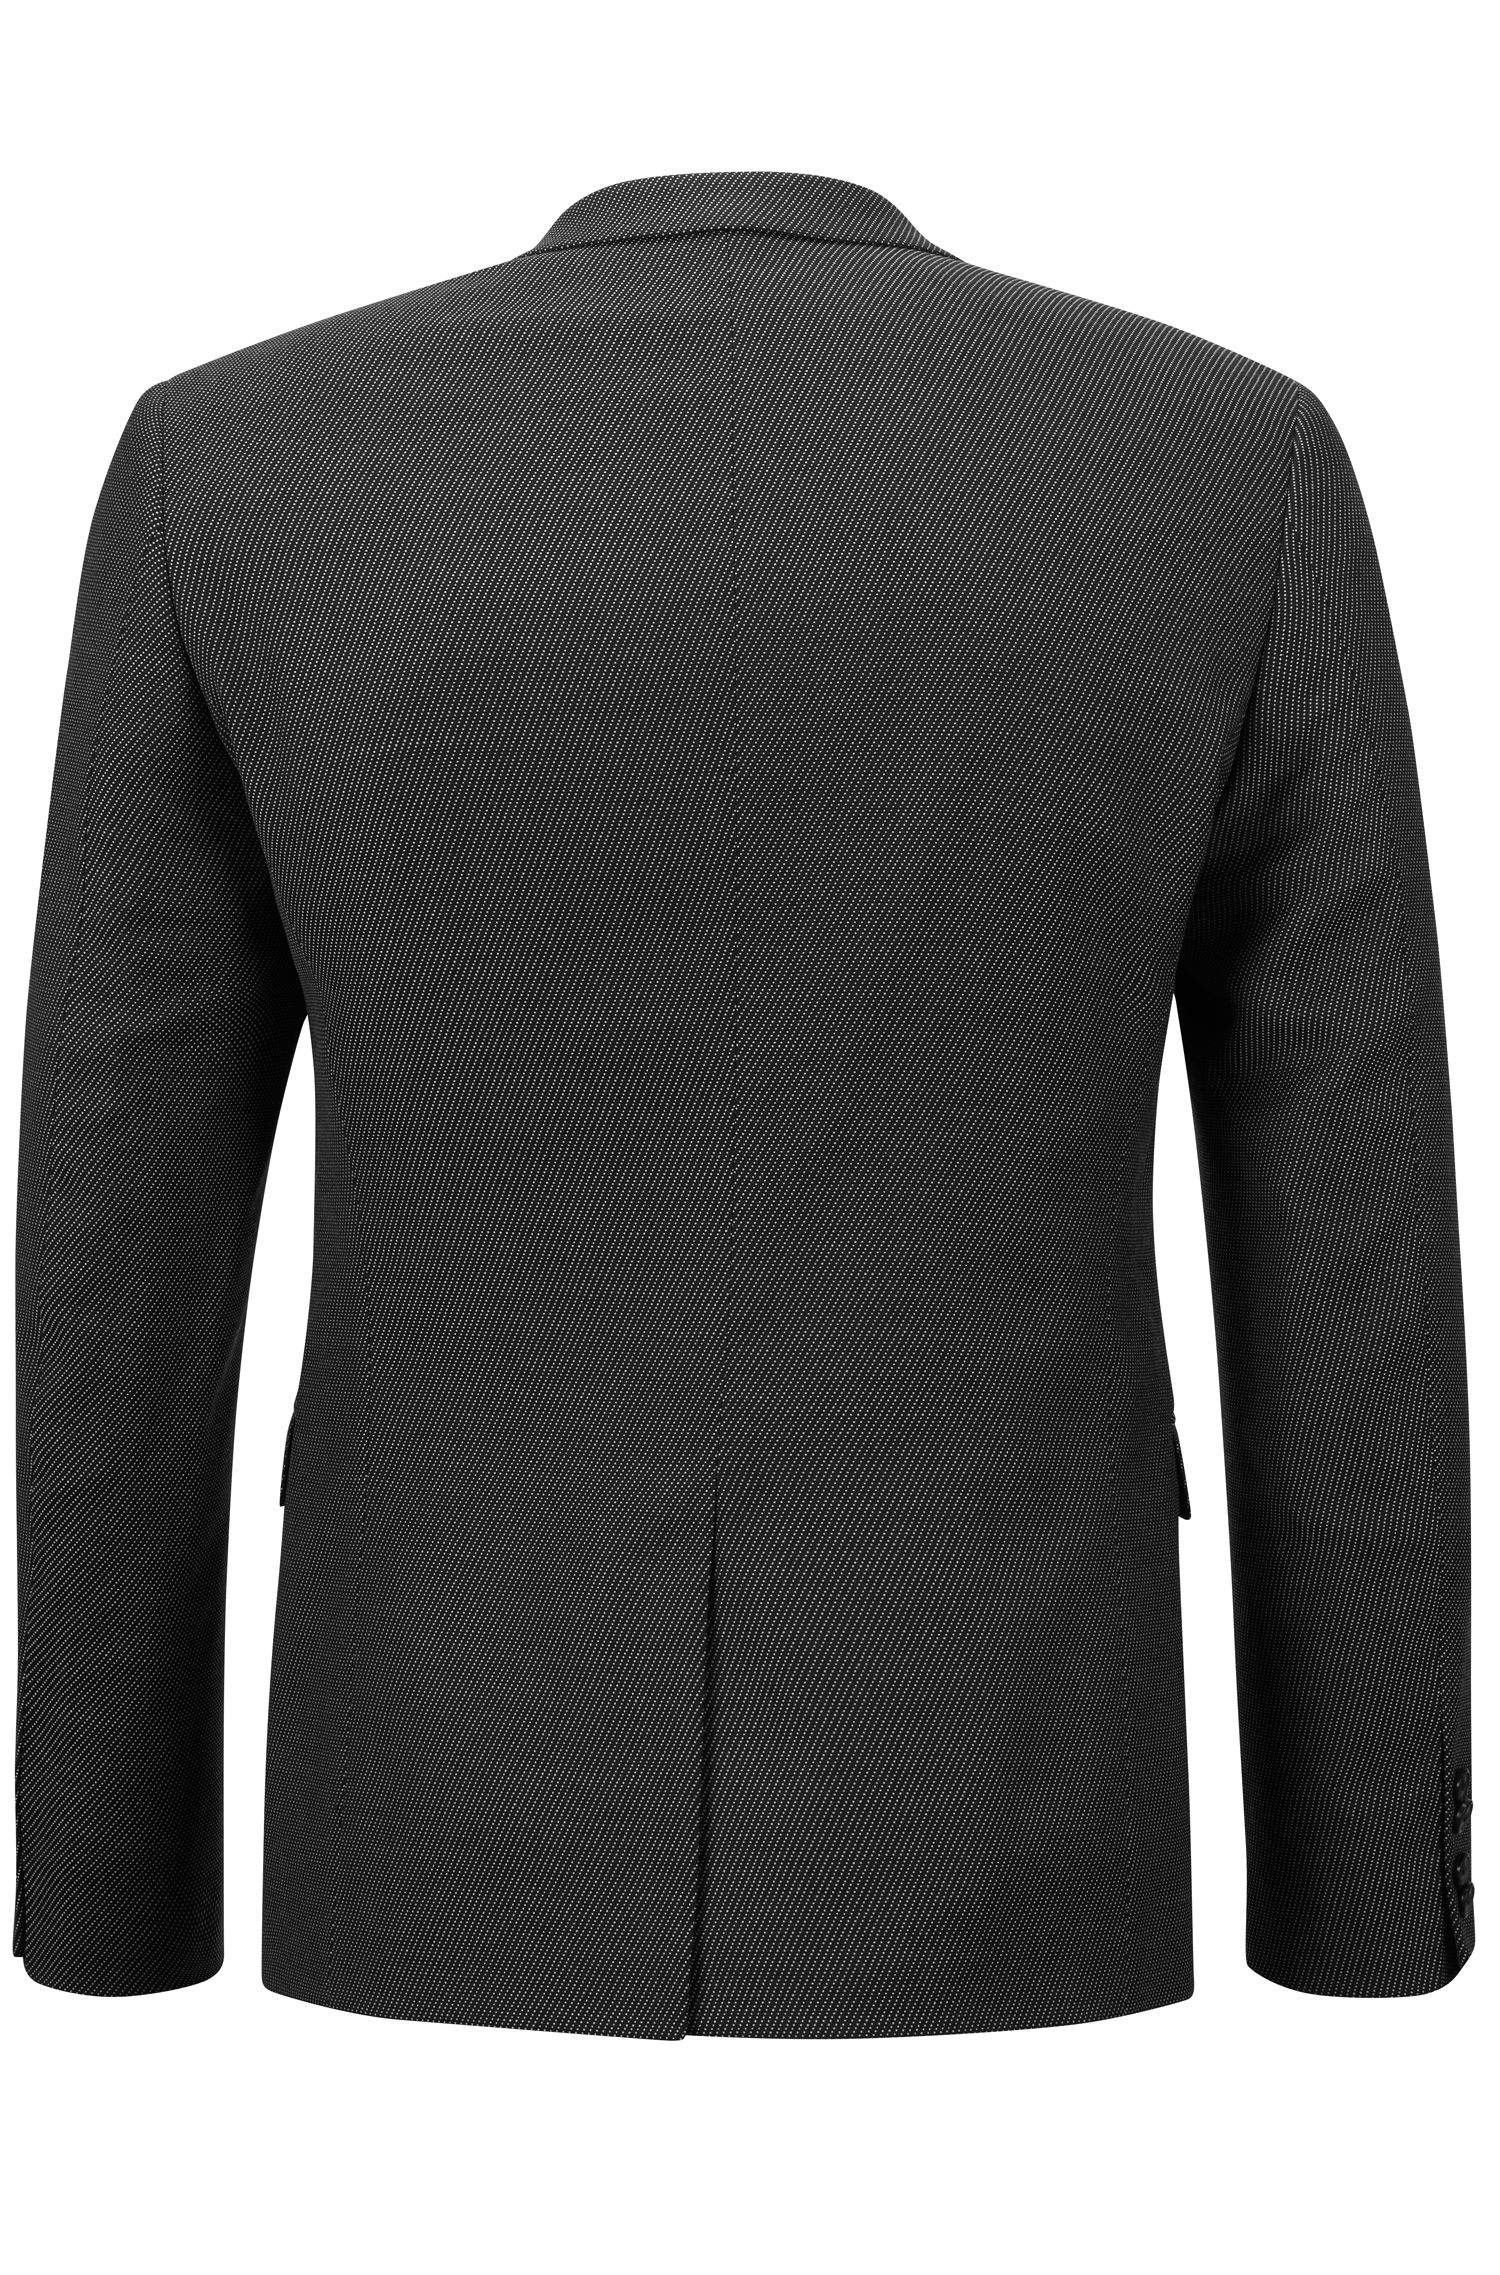 Virgin Wool Blend Sport Coat, Extra Slim Fit | Adris, Black